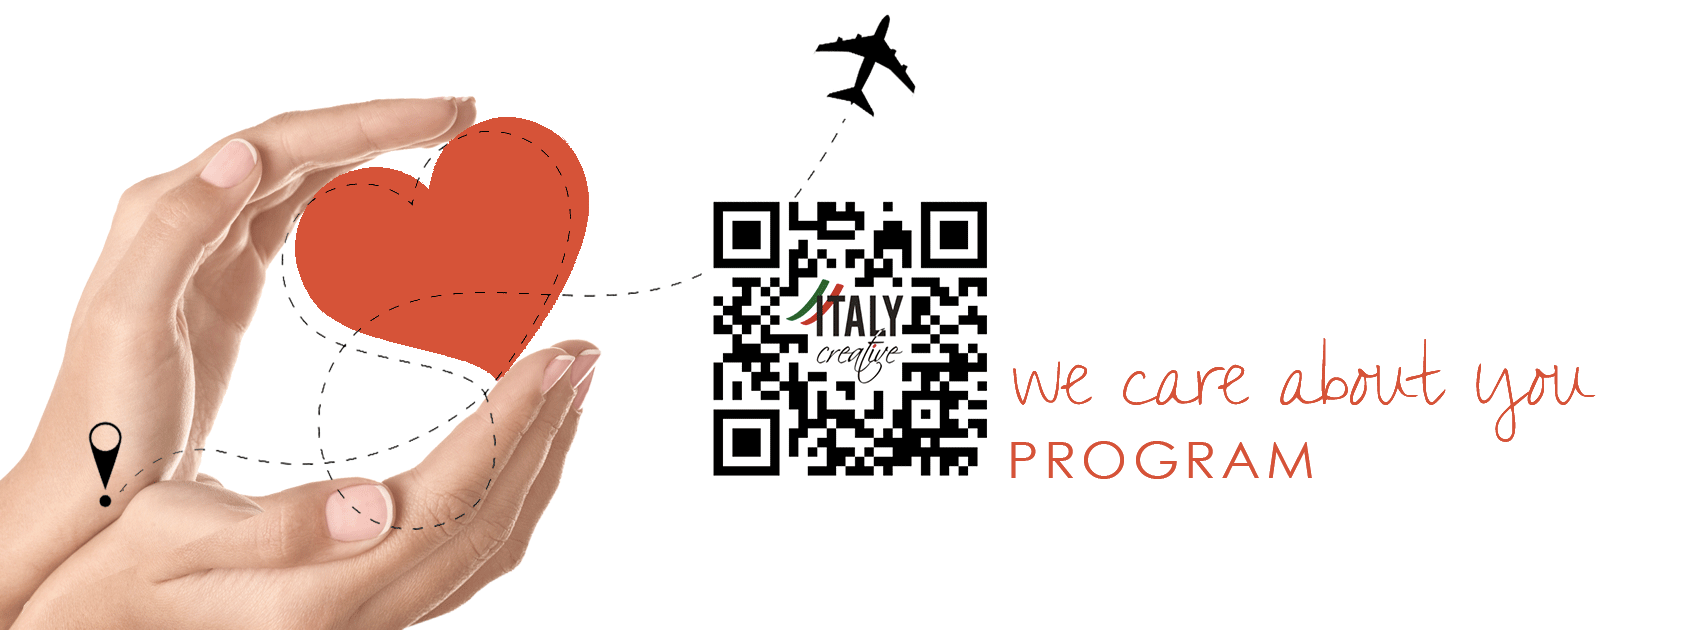 Italy Creative: we care about you program